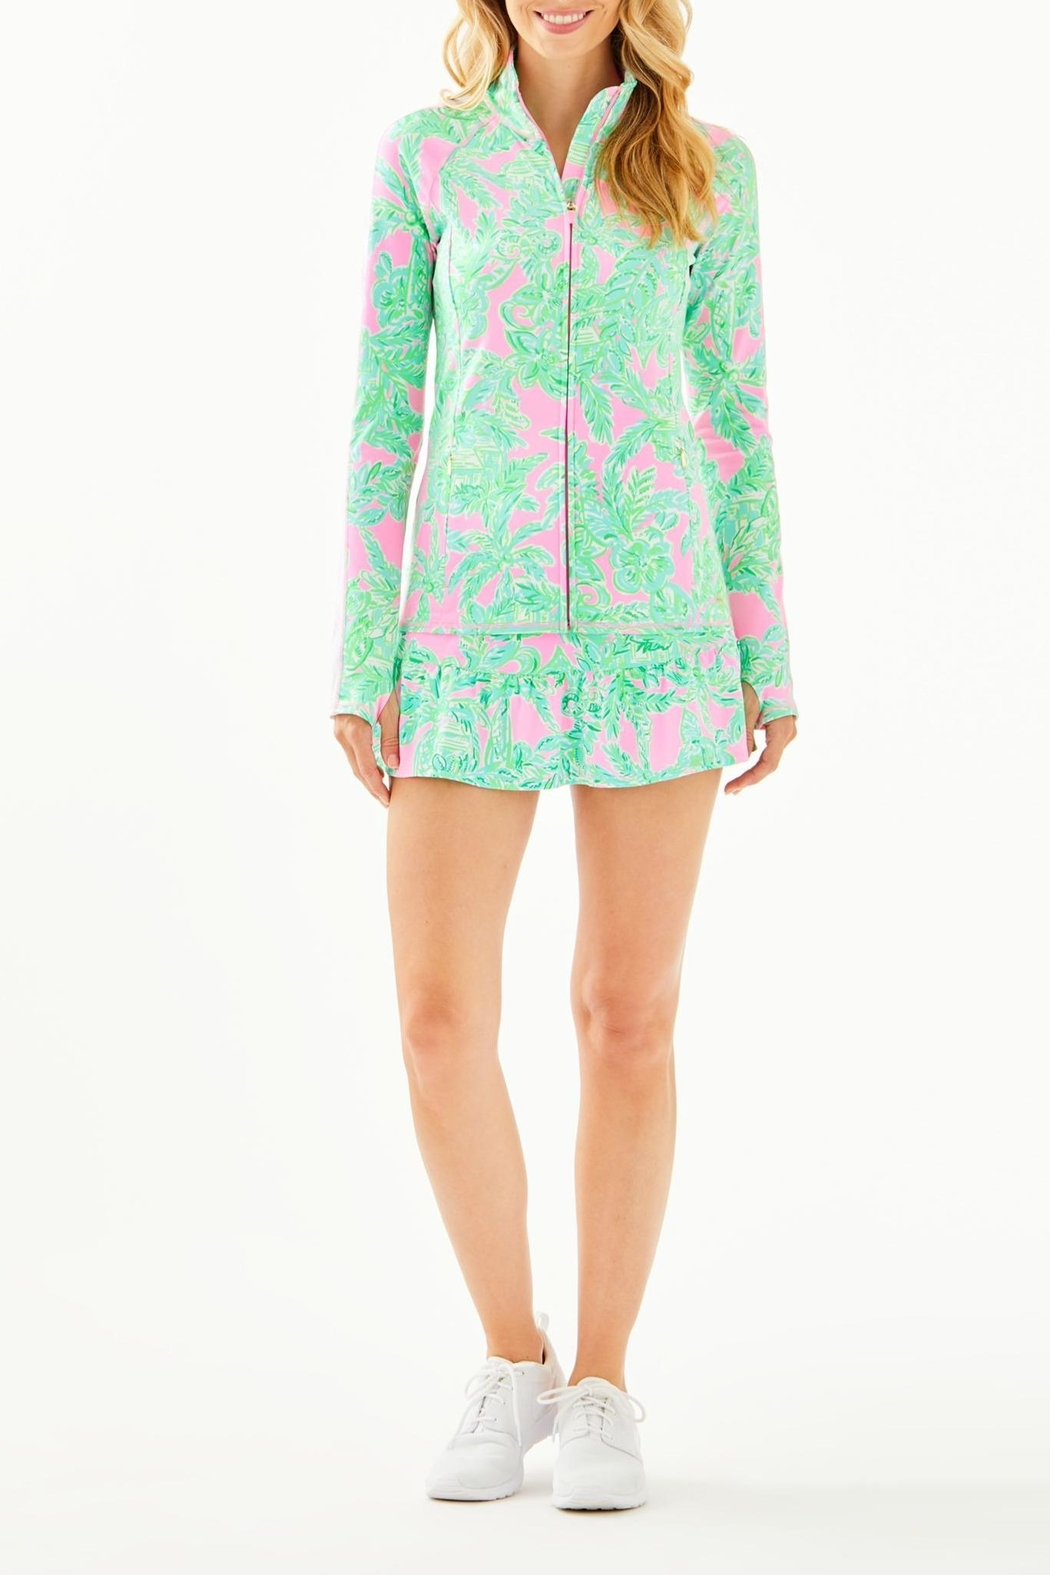 Lilly Pulitzer Luxletic Serena Zip-Up - Back Cropped Image